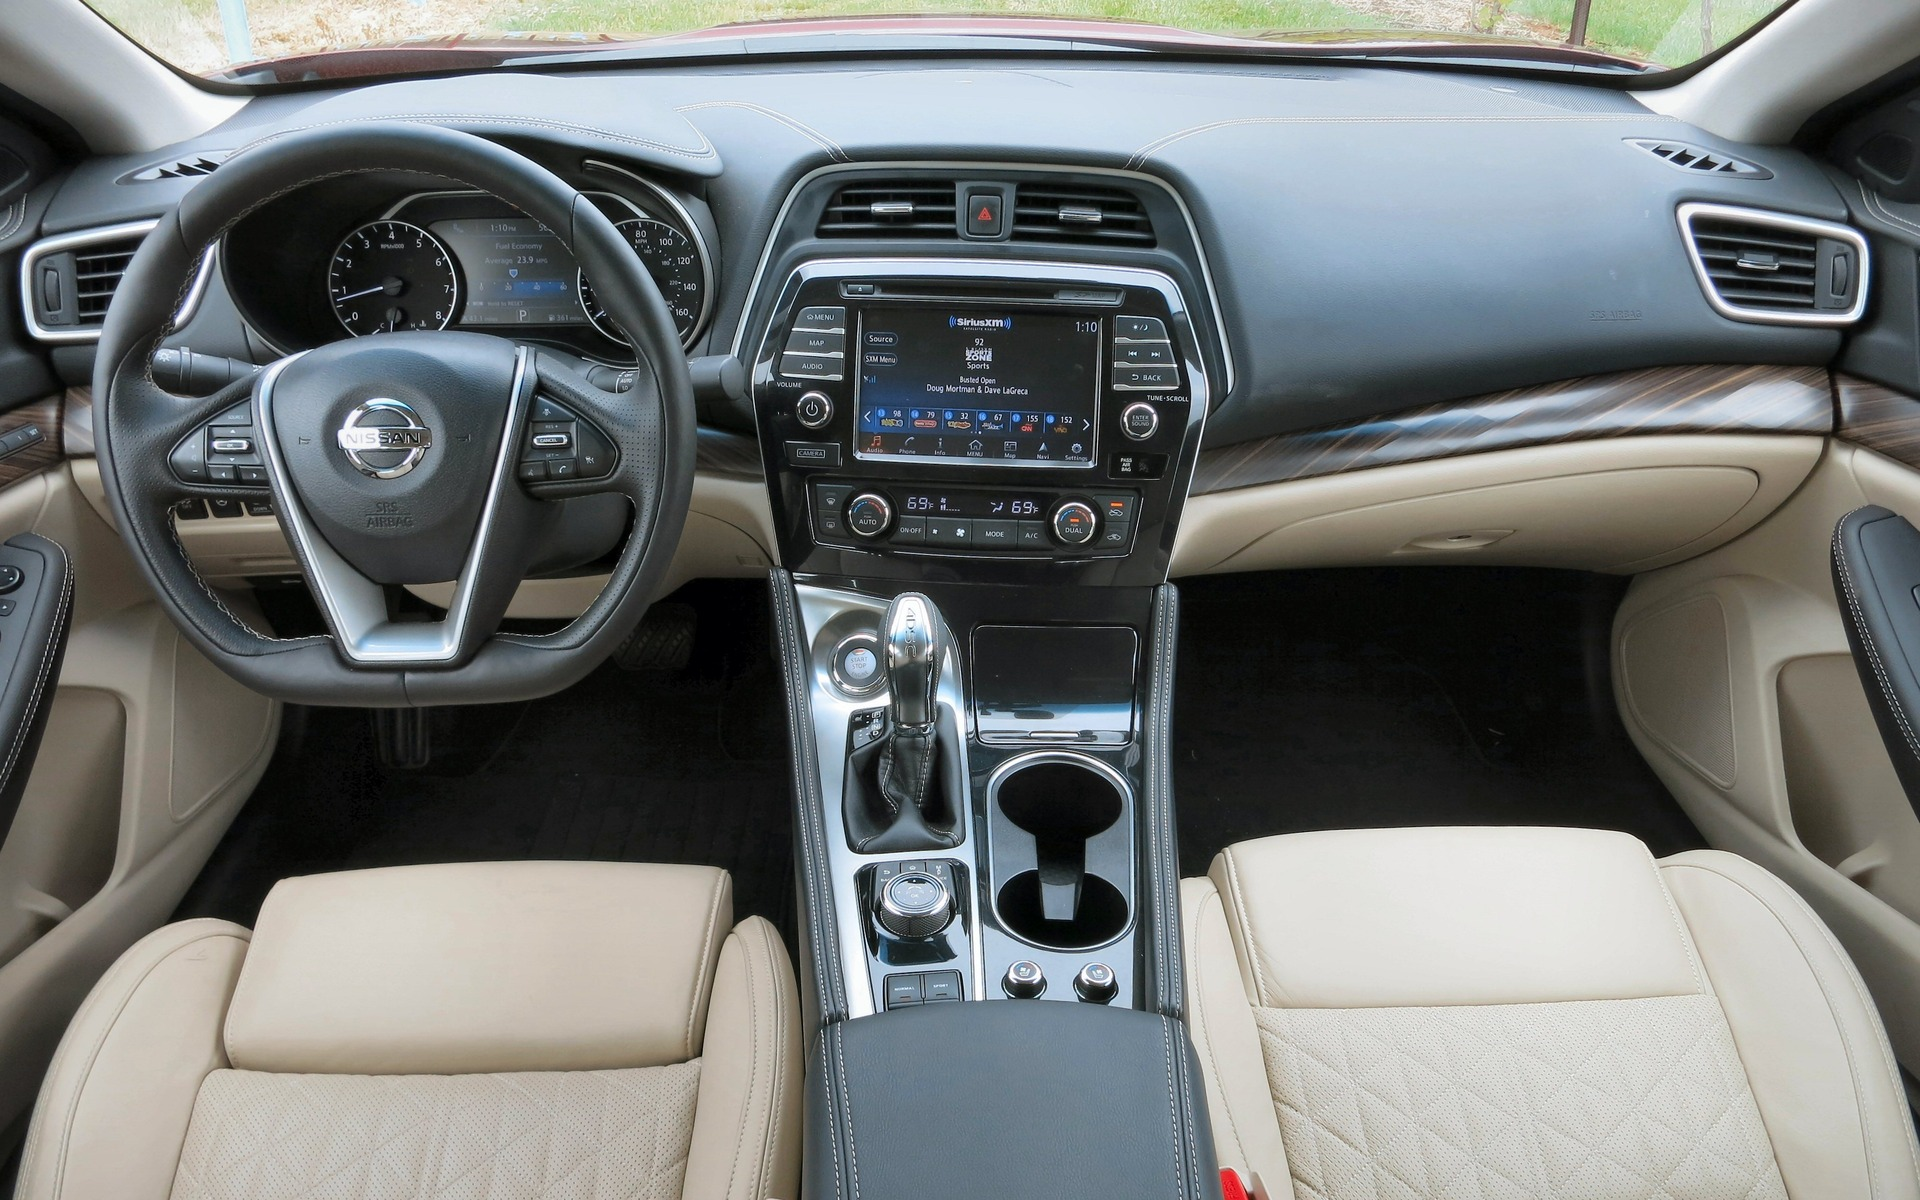 Equally big steps have been made inside the new Nissan Maxima.